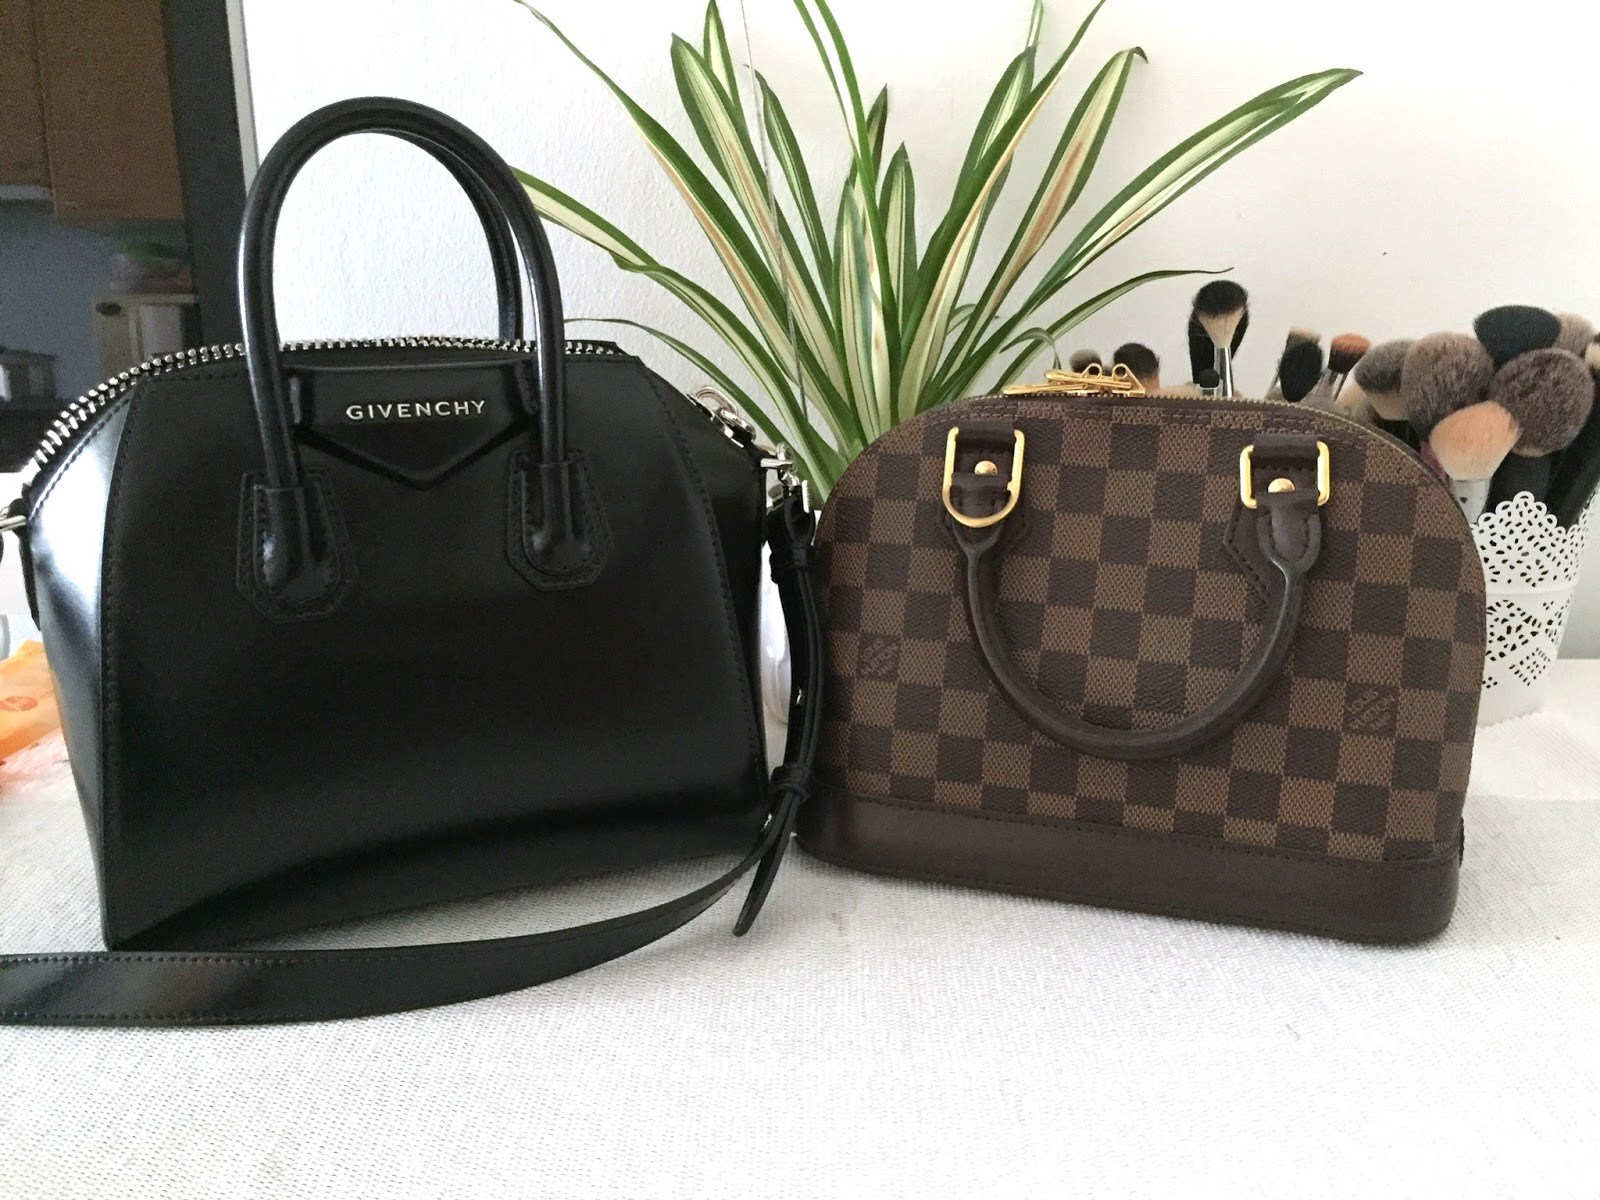 a7a61d29d4 I've been a fan of the Givenchy Antigona bag for years, I've tried it  several times but the small size doesn't work out for me.